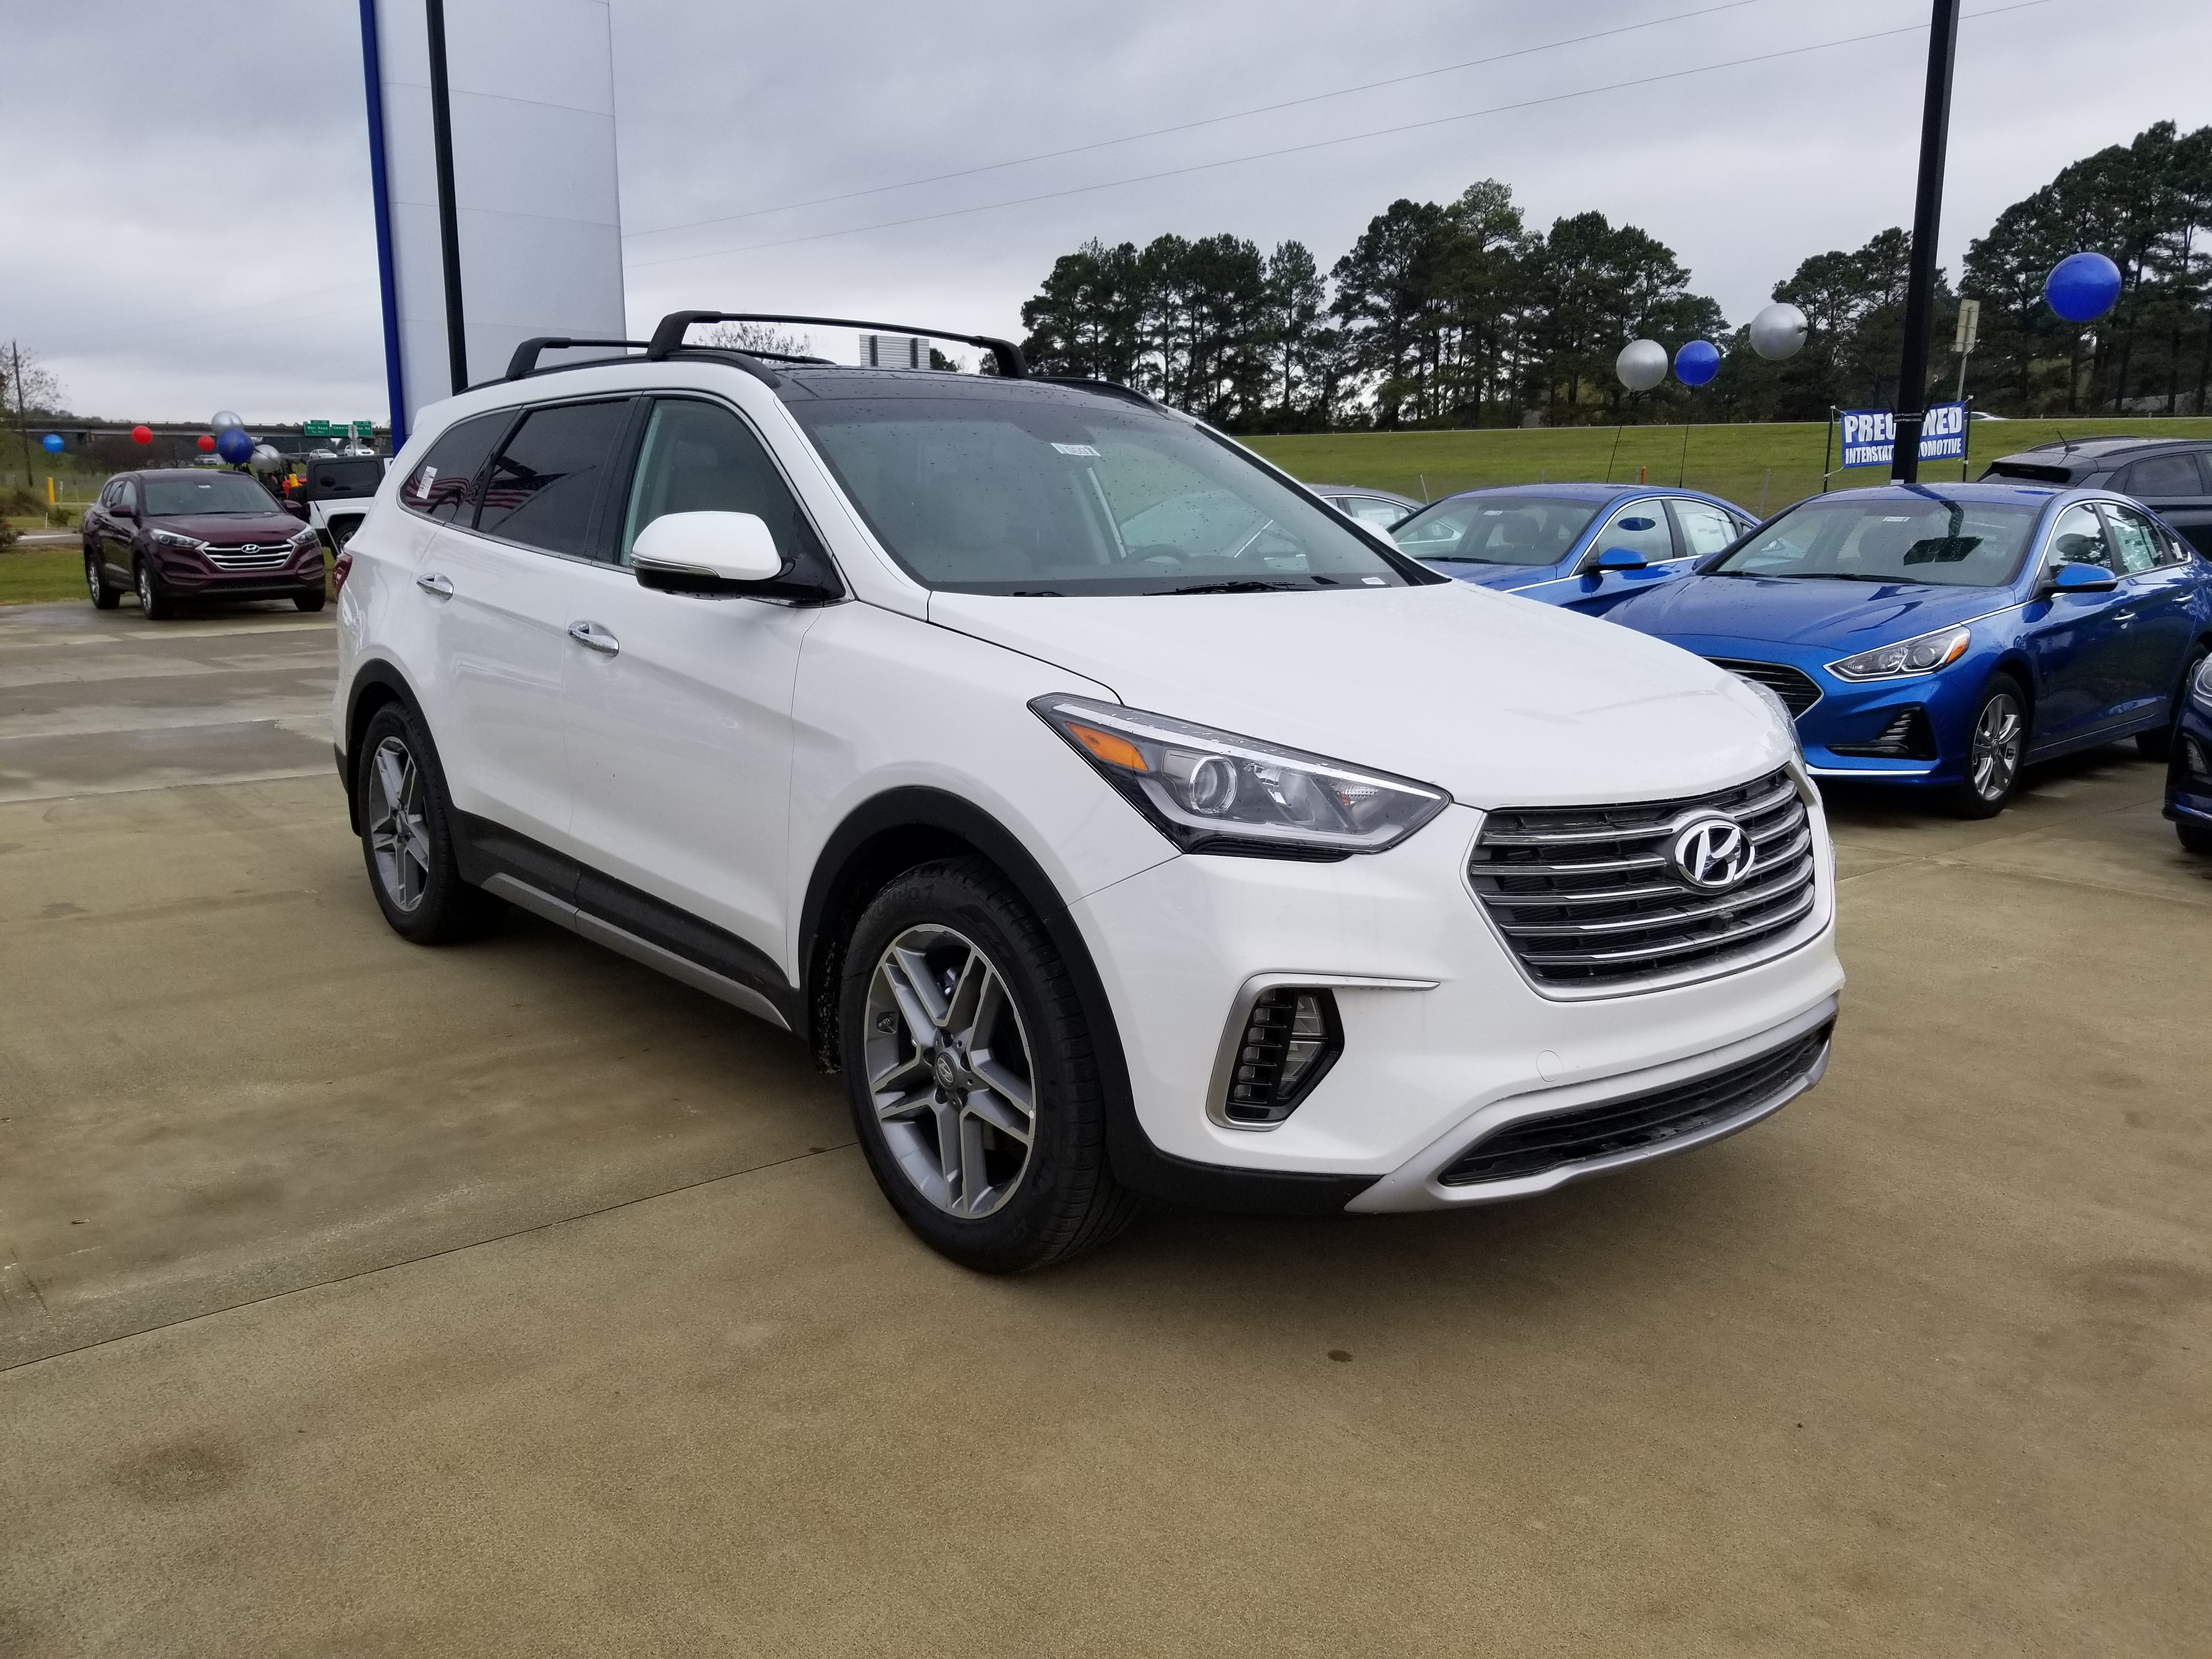 Used Cars for Sale Near Me 500 Down Fresh 500 Down Car Lots In West Monroe La